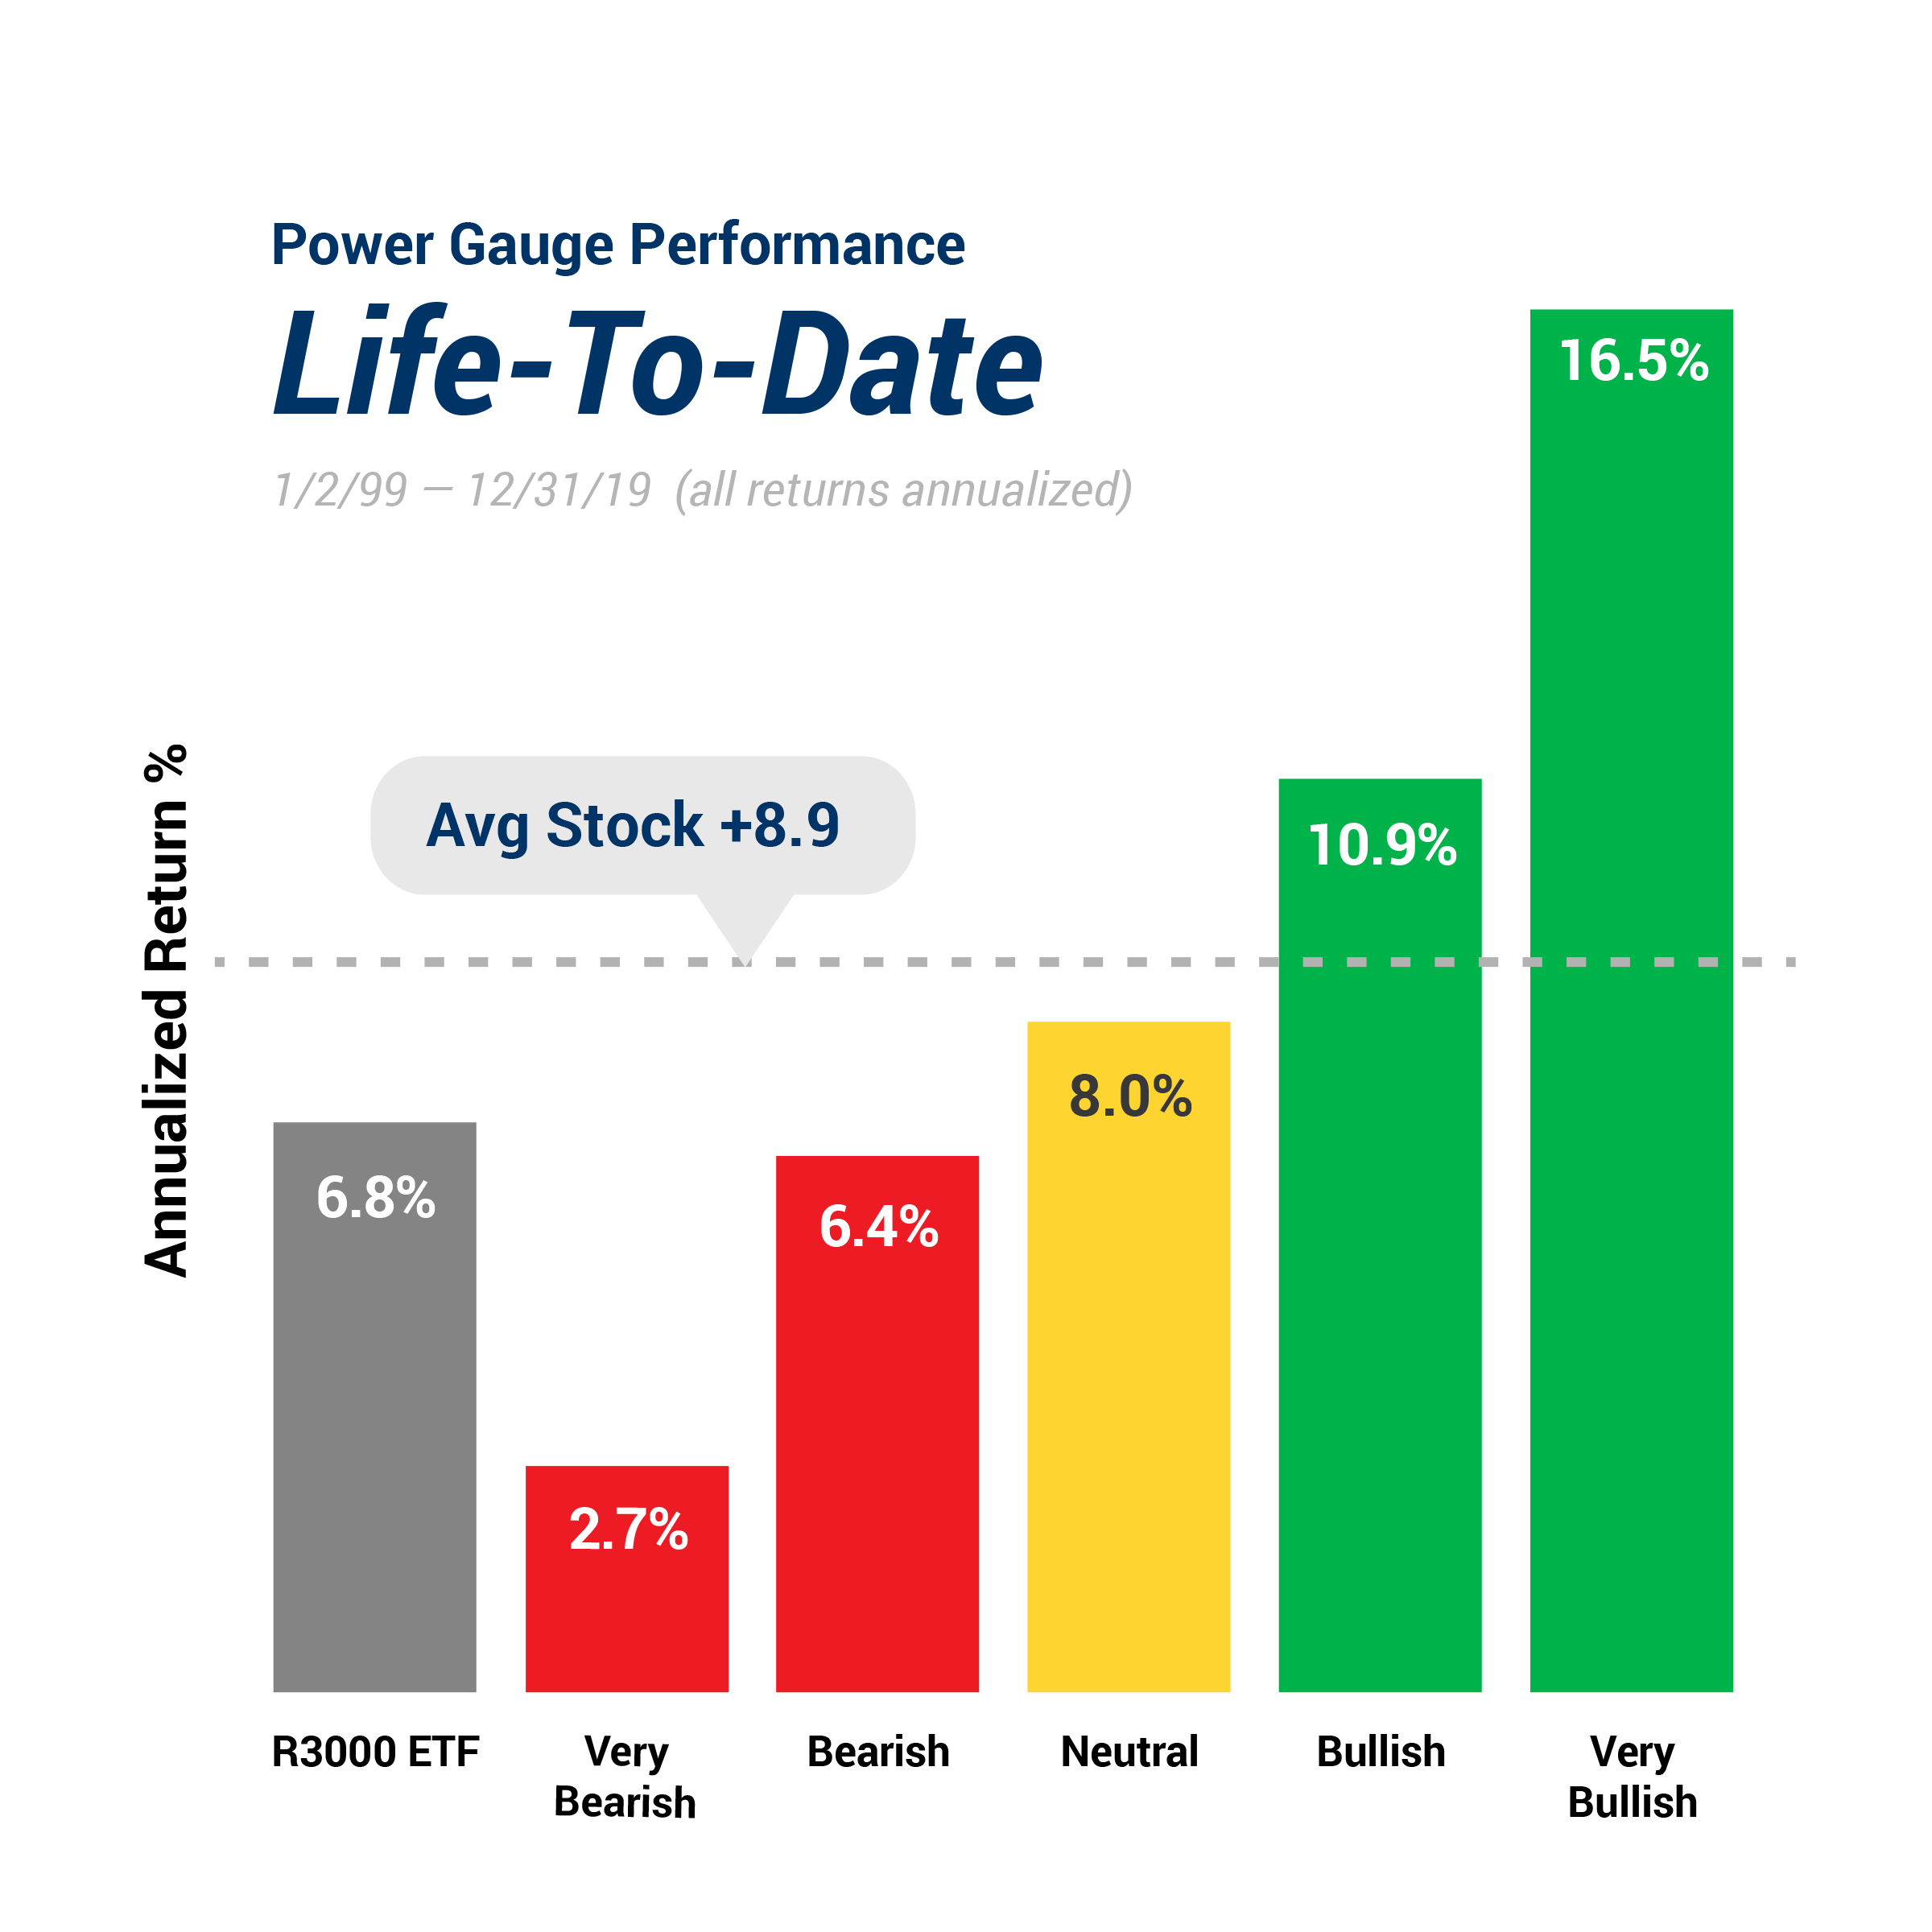 stock rating performance chart - life to date of the chaikin stock rating